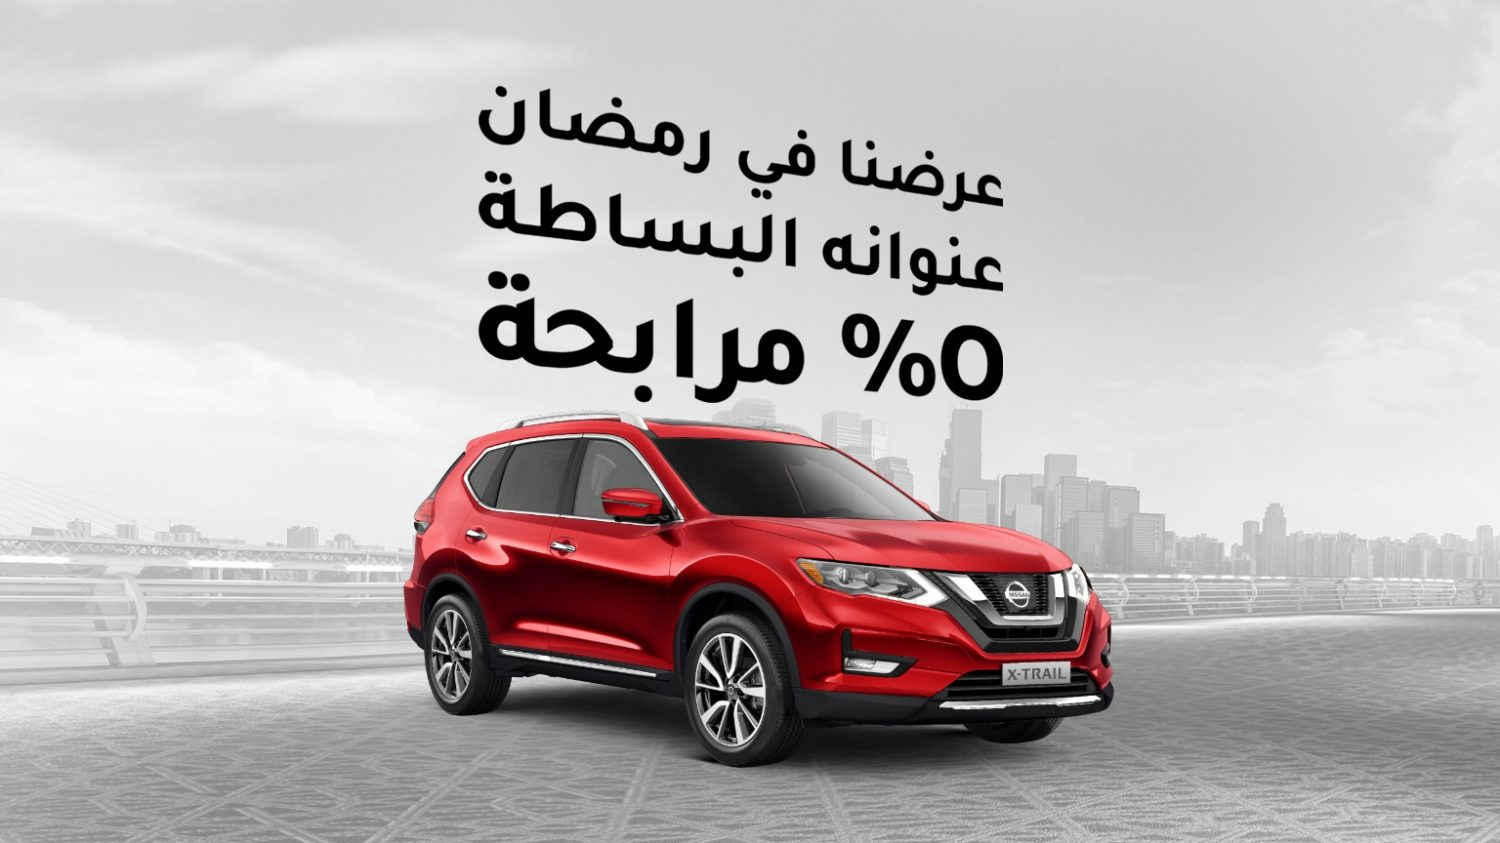 2018 Nissan X-Trail Ramadan Offers